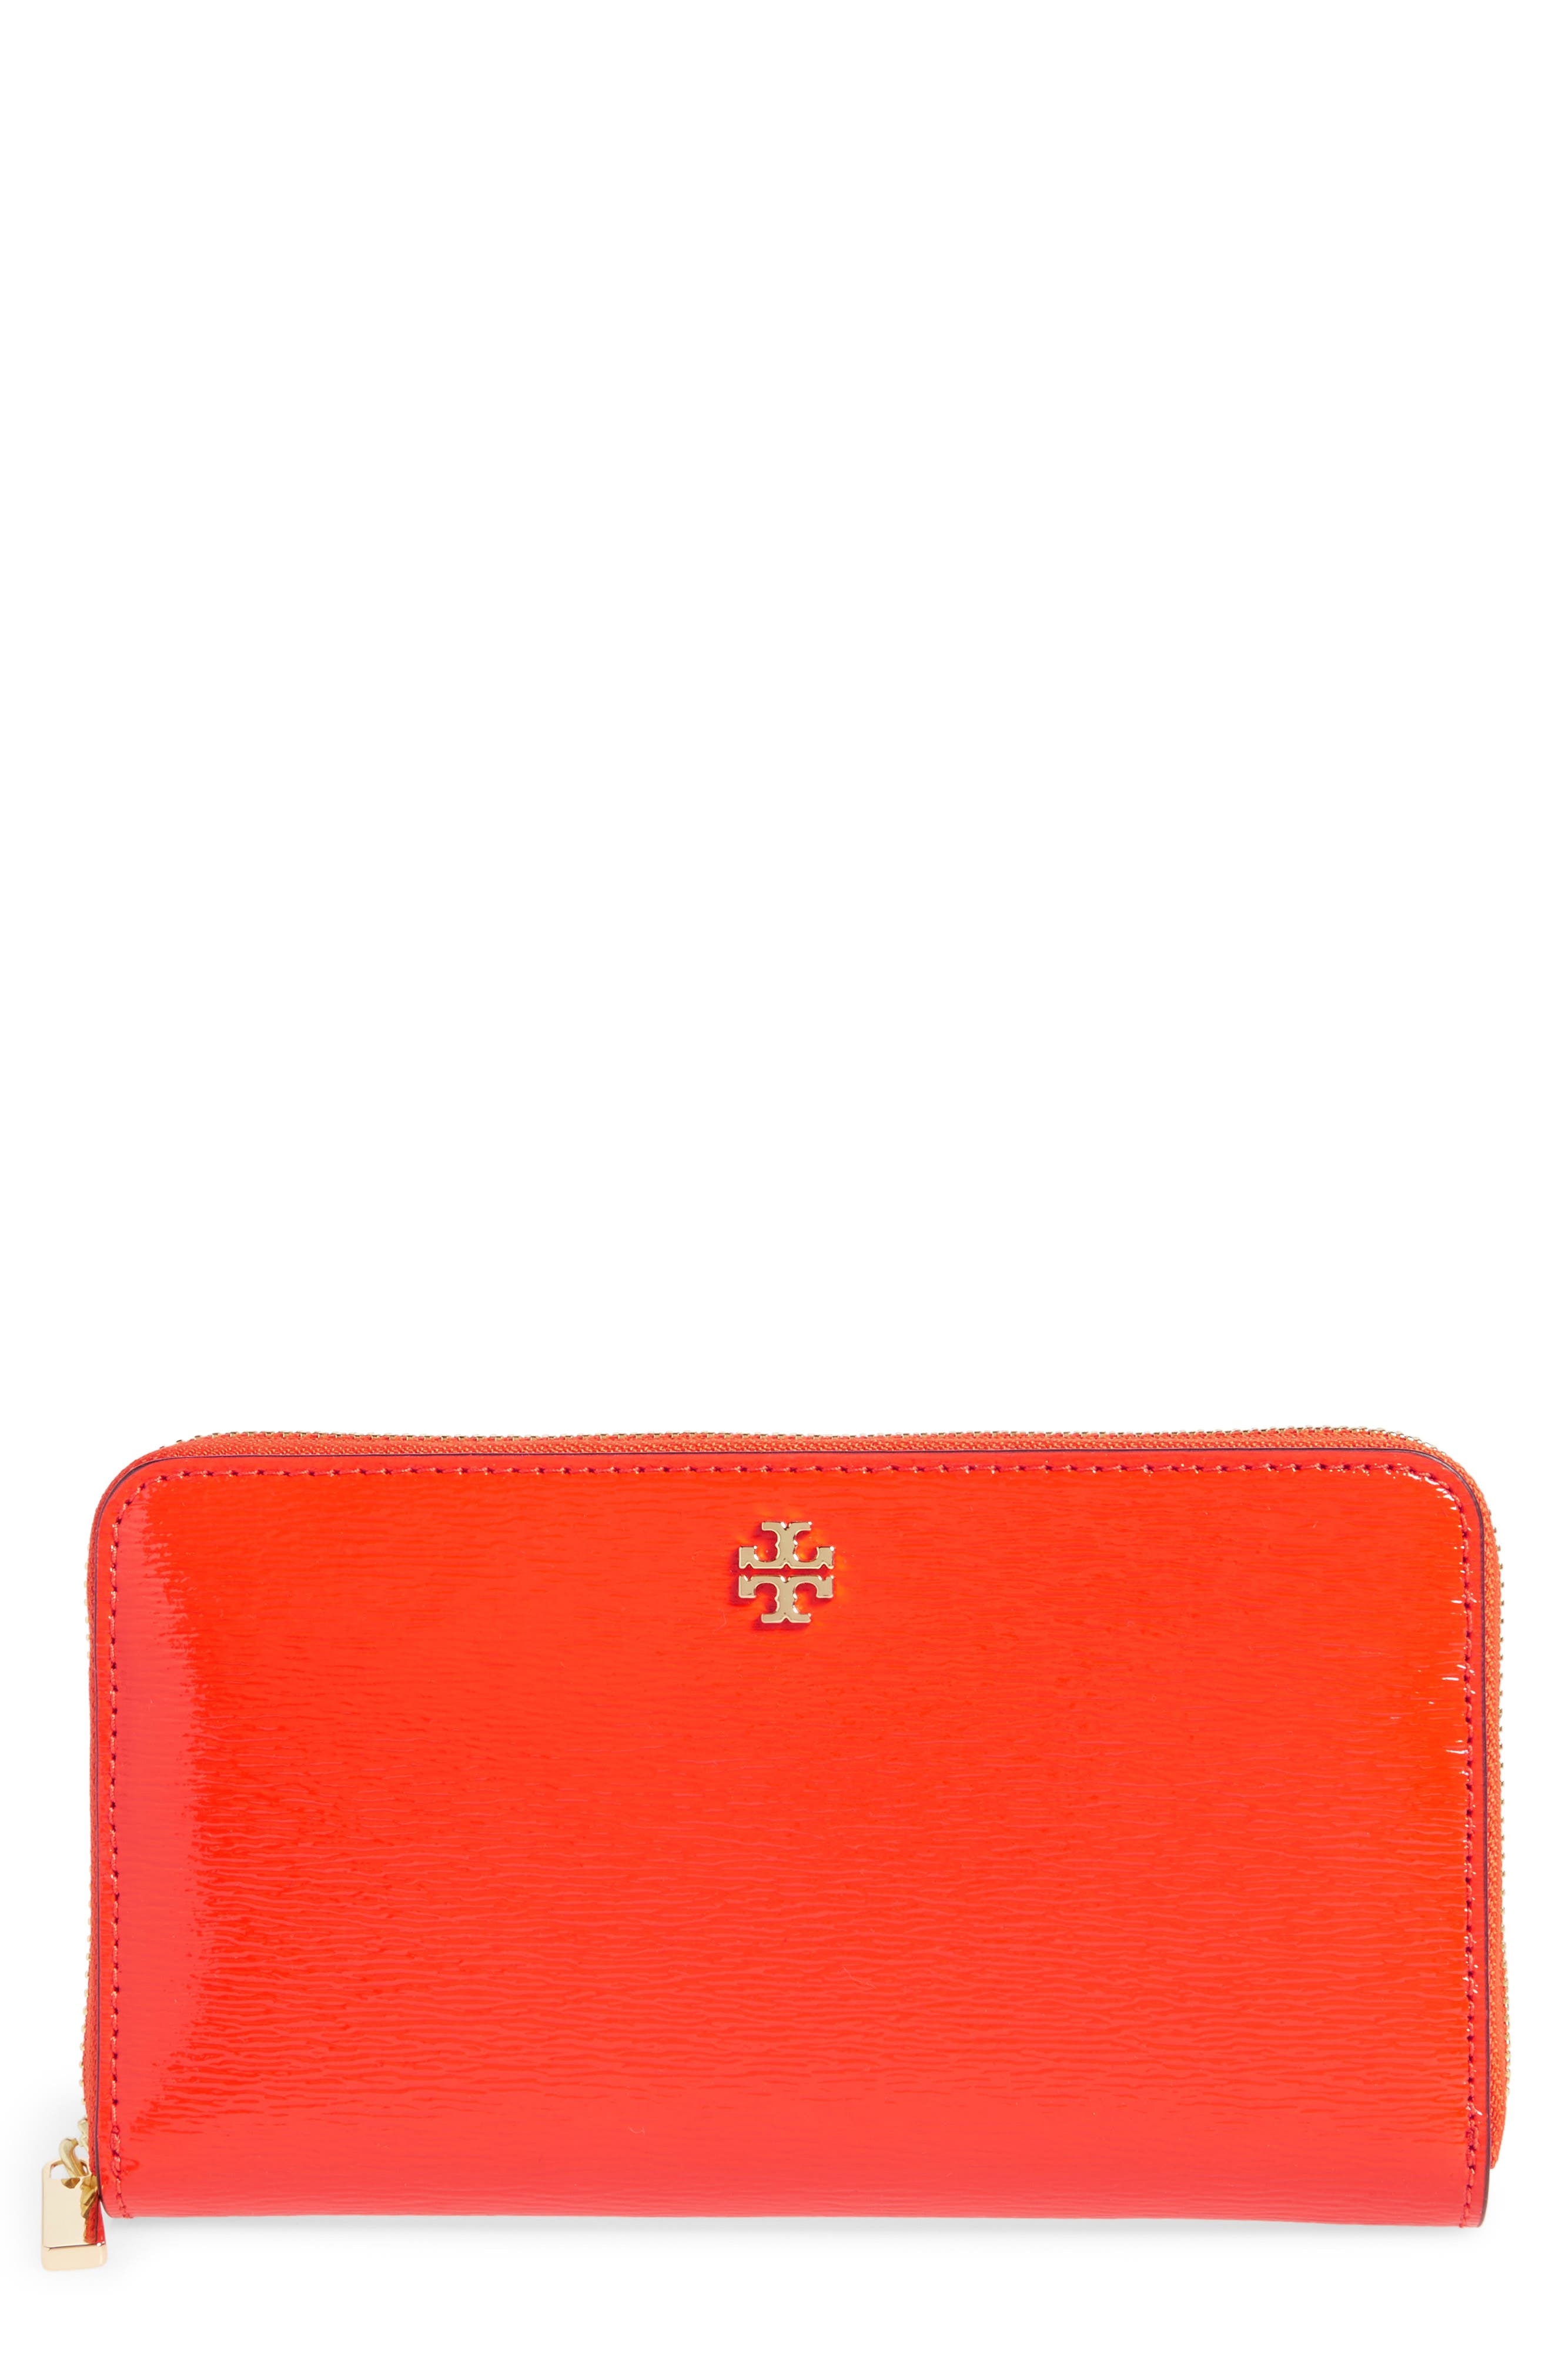 Alternate Image 1 Selected - Tory Burch Robinson Patent Leather Continental Wallet